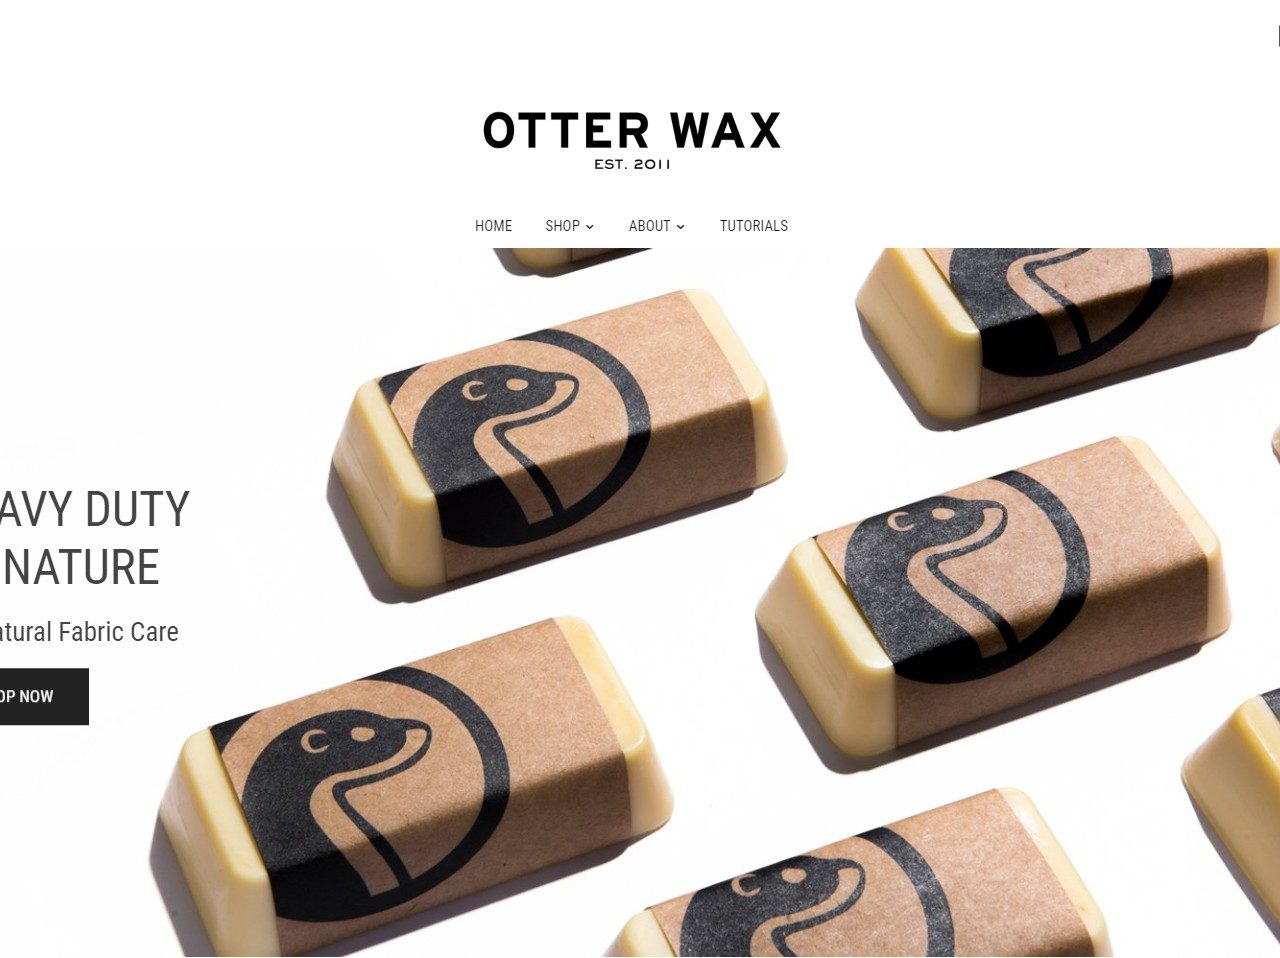 Otterwax Fabric & Leather Care Products.